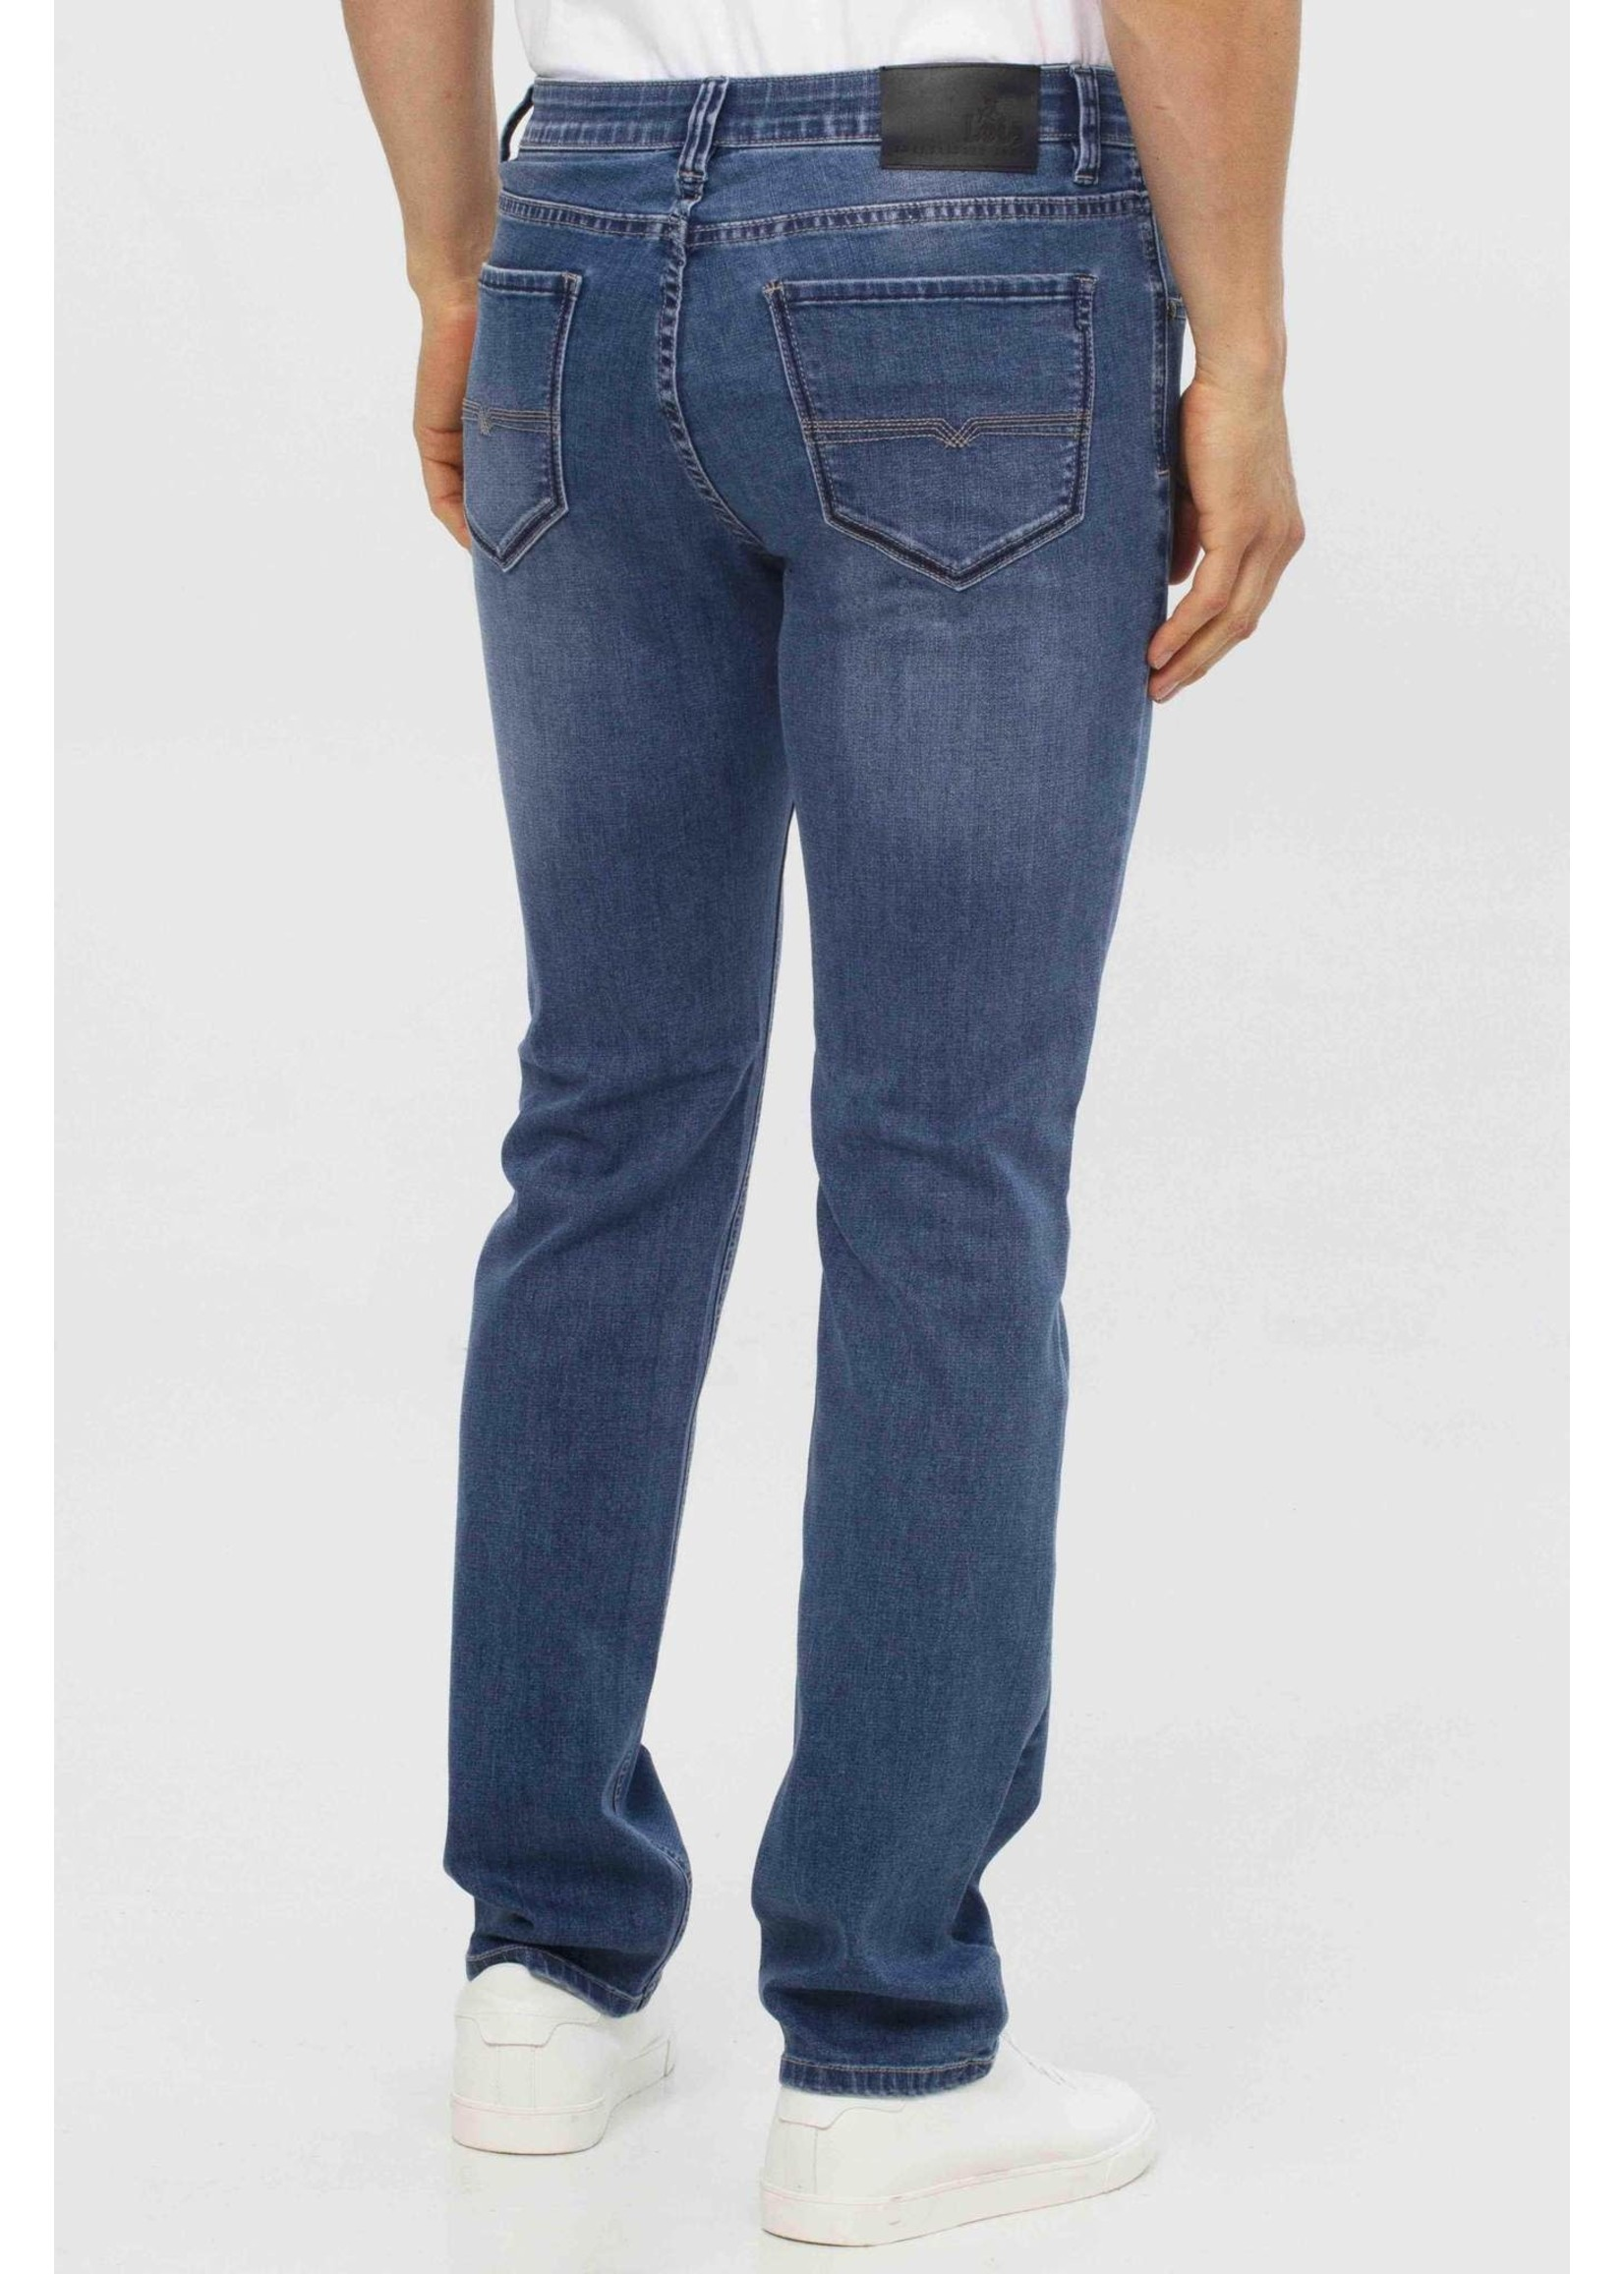 """Lois Jeans Canada The """"Brad Slim 6866"""" by Lois Jeans"""